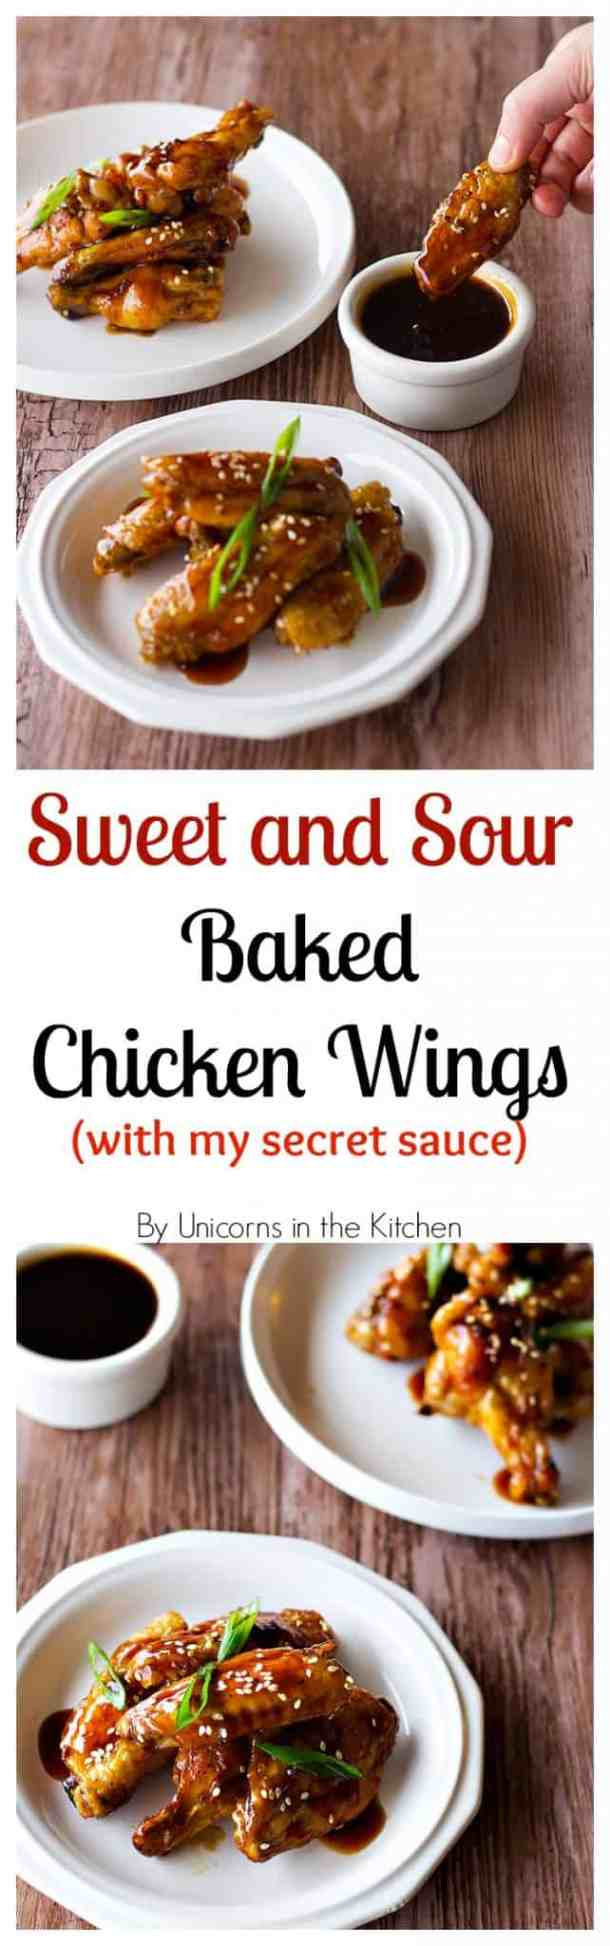 Sweet and Sour Chicken Wings Recipe | Sweet and Sour Chicken Baked | from UnicornsintheKitchen.com